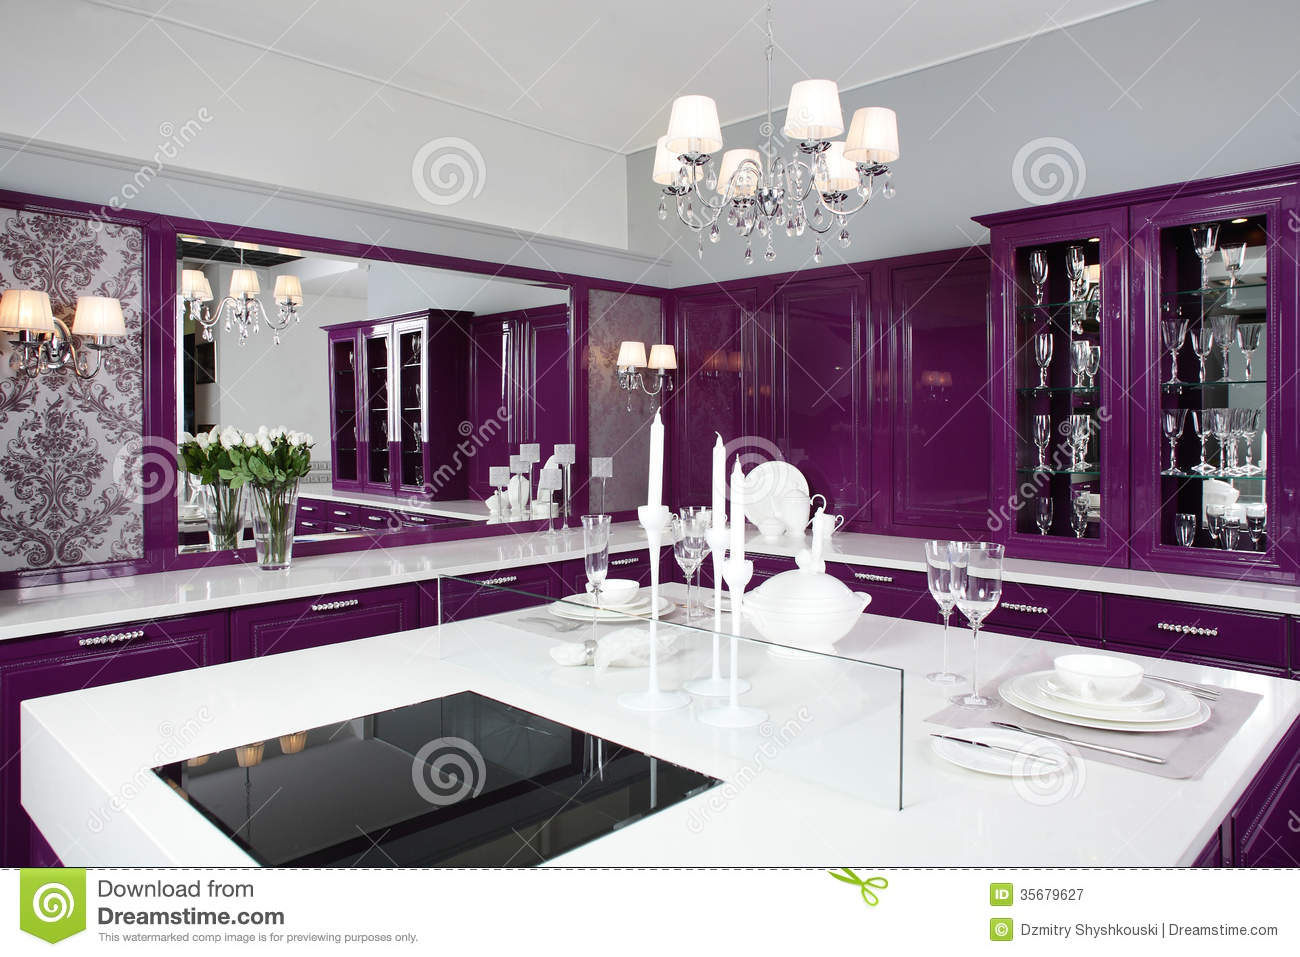 Modern Purple Kitchen With Stylish Furniture Royalty Free Stock